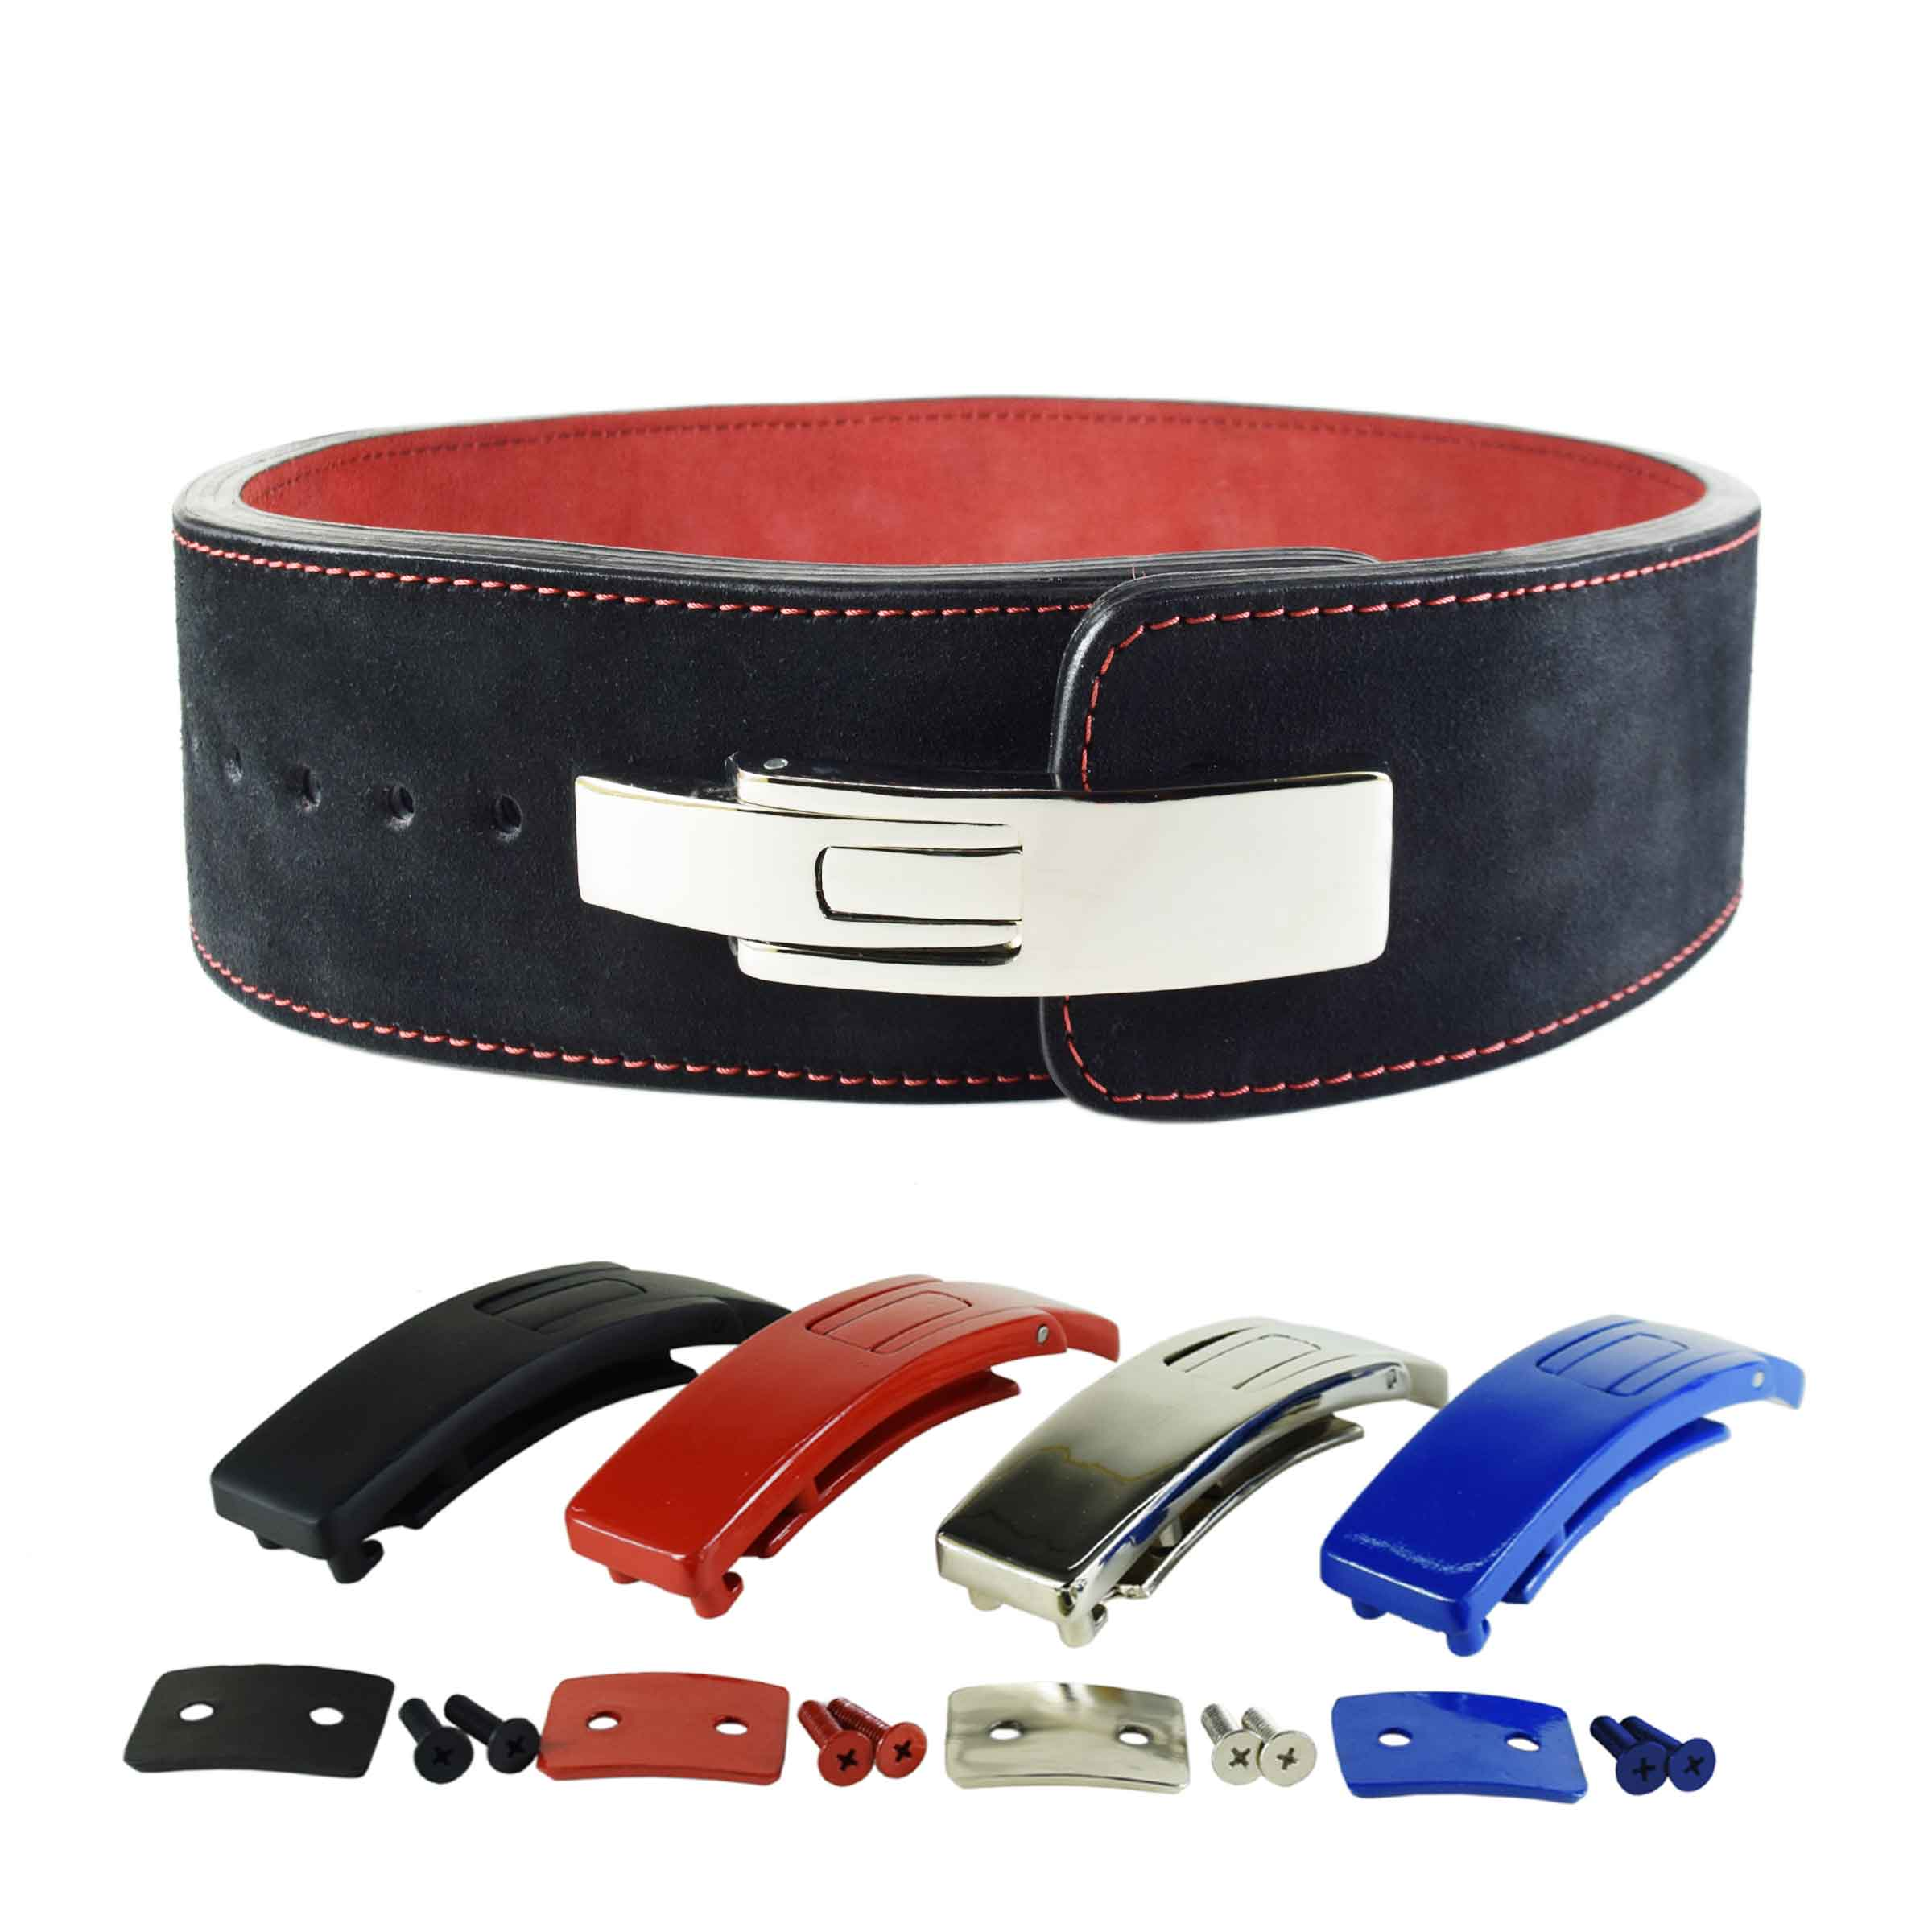 BLACK LEVER BELT FROM RED INSIDE